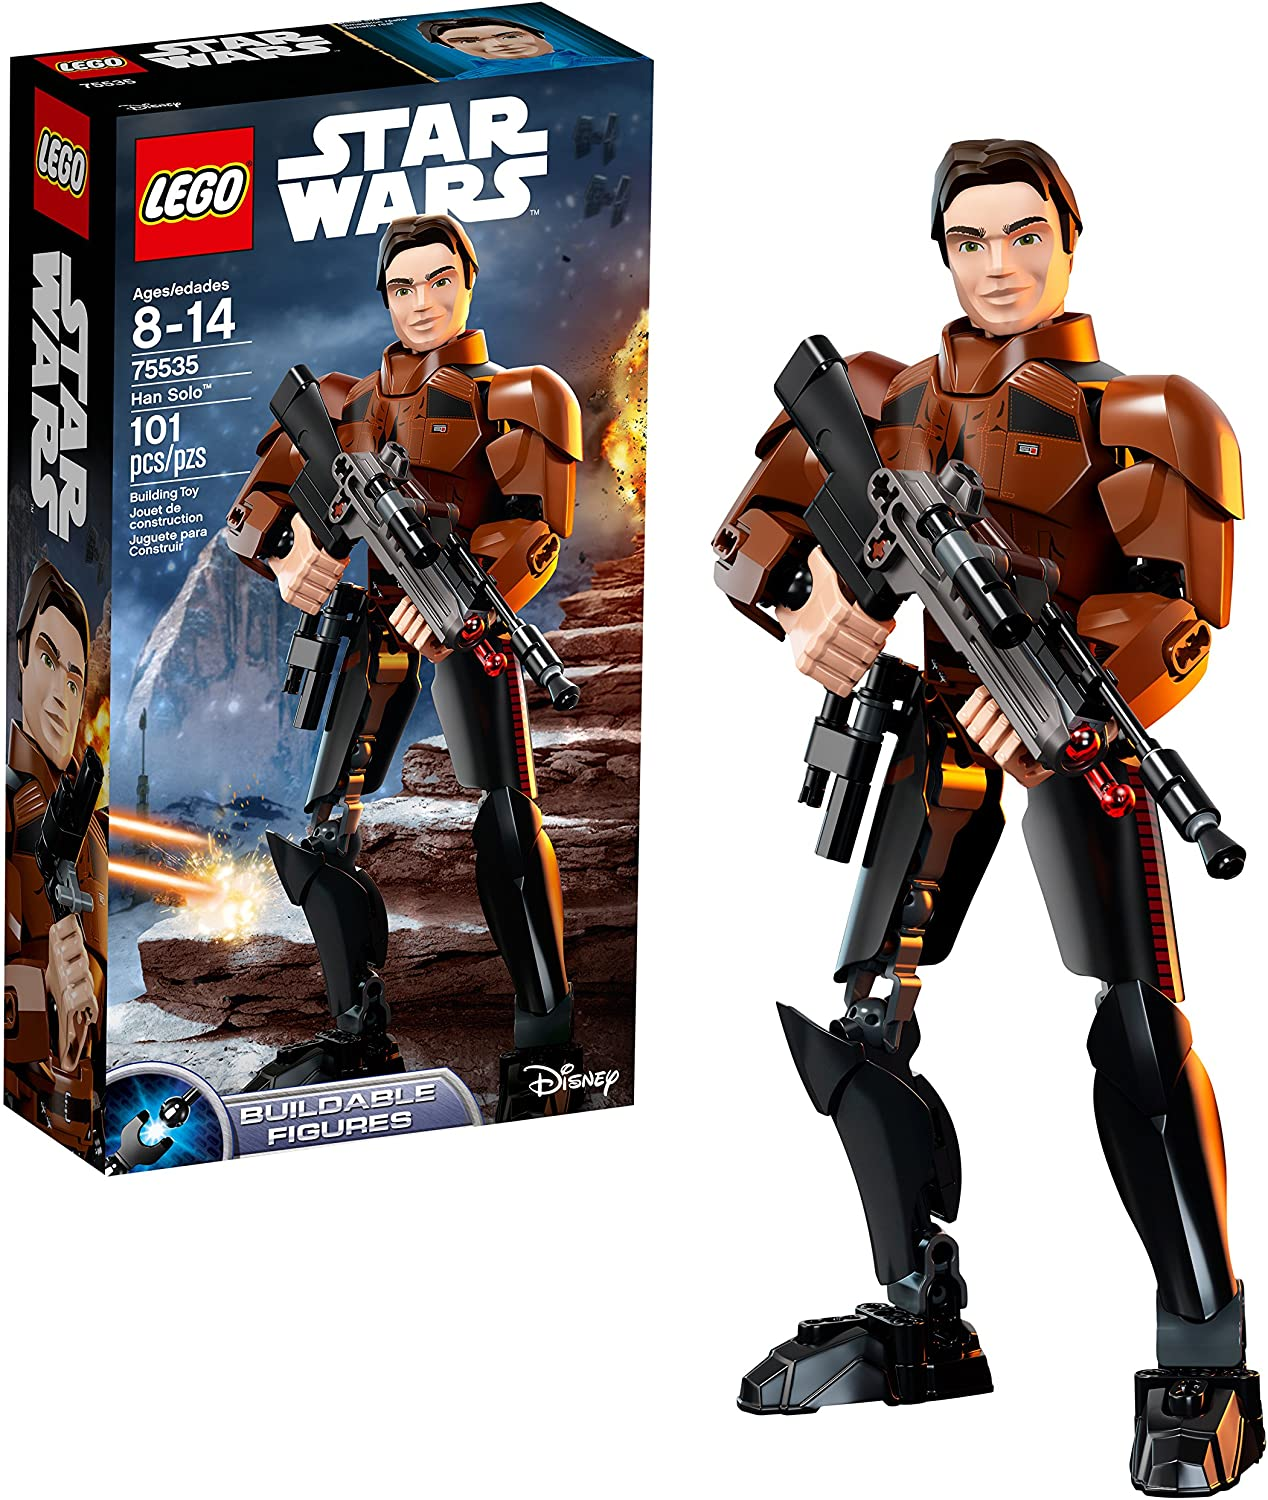 LEGO Star Wars Solo: A Star Wars Story Han Solo 75535 Building Kit (101 Piece)